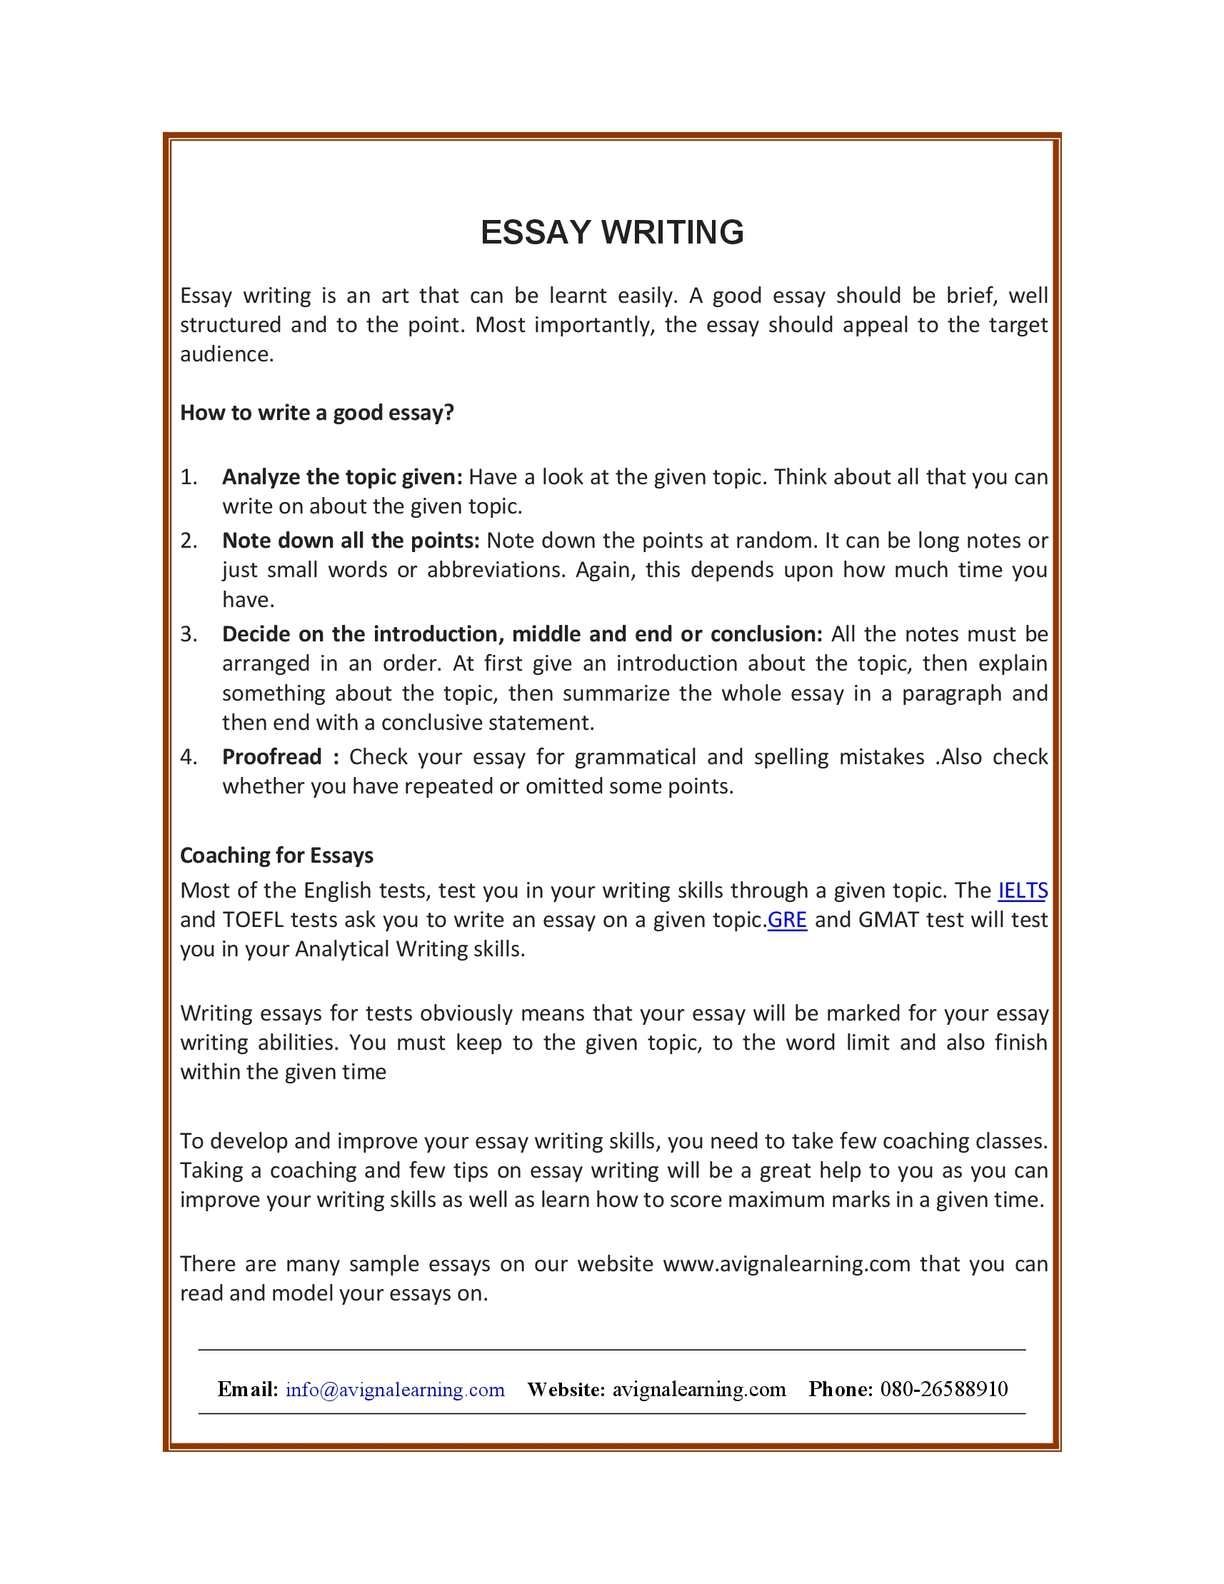 pay for someone to write music essay